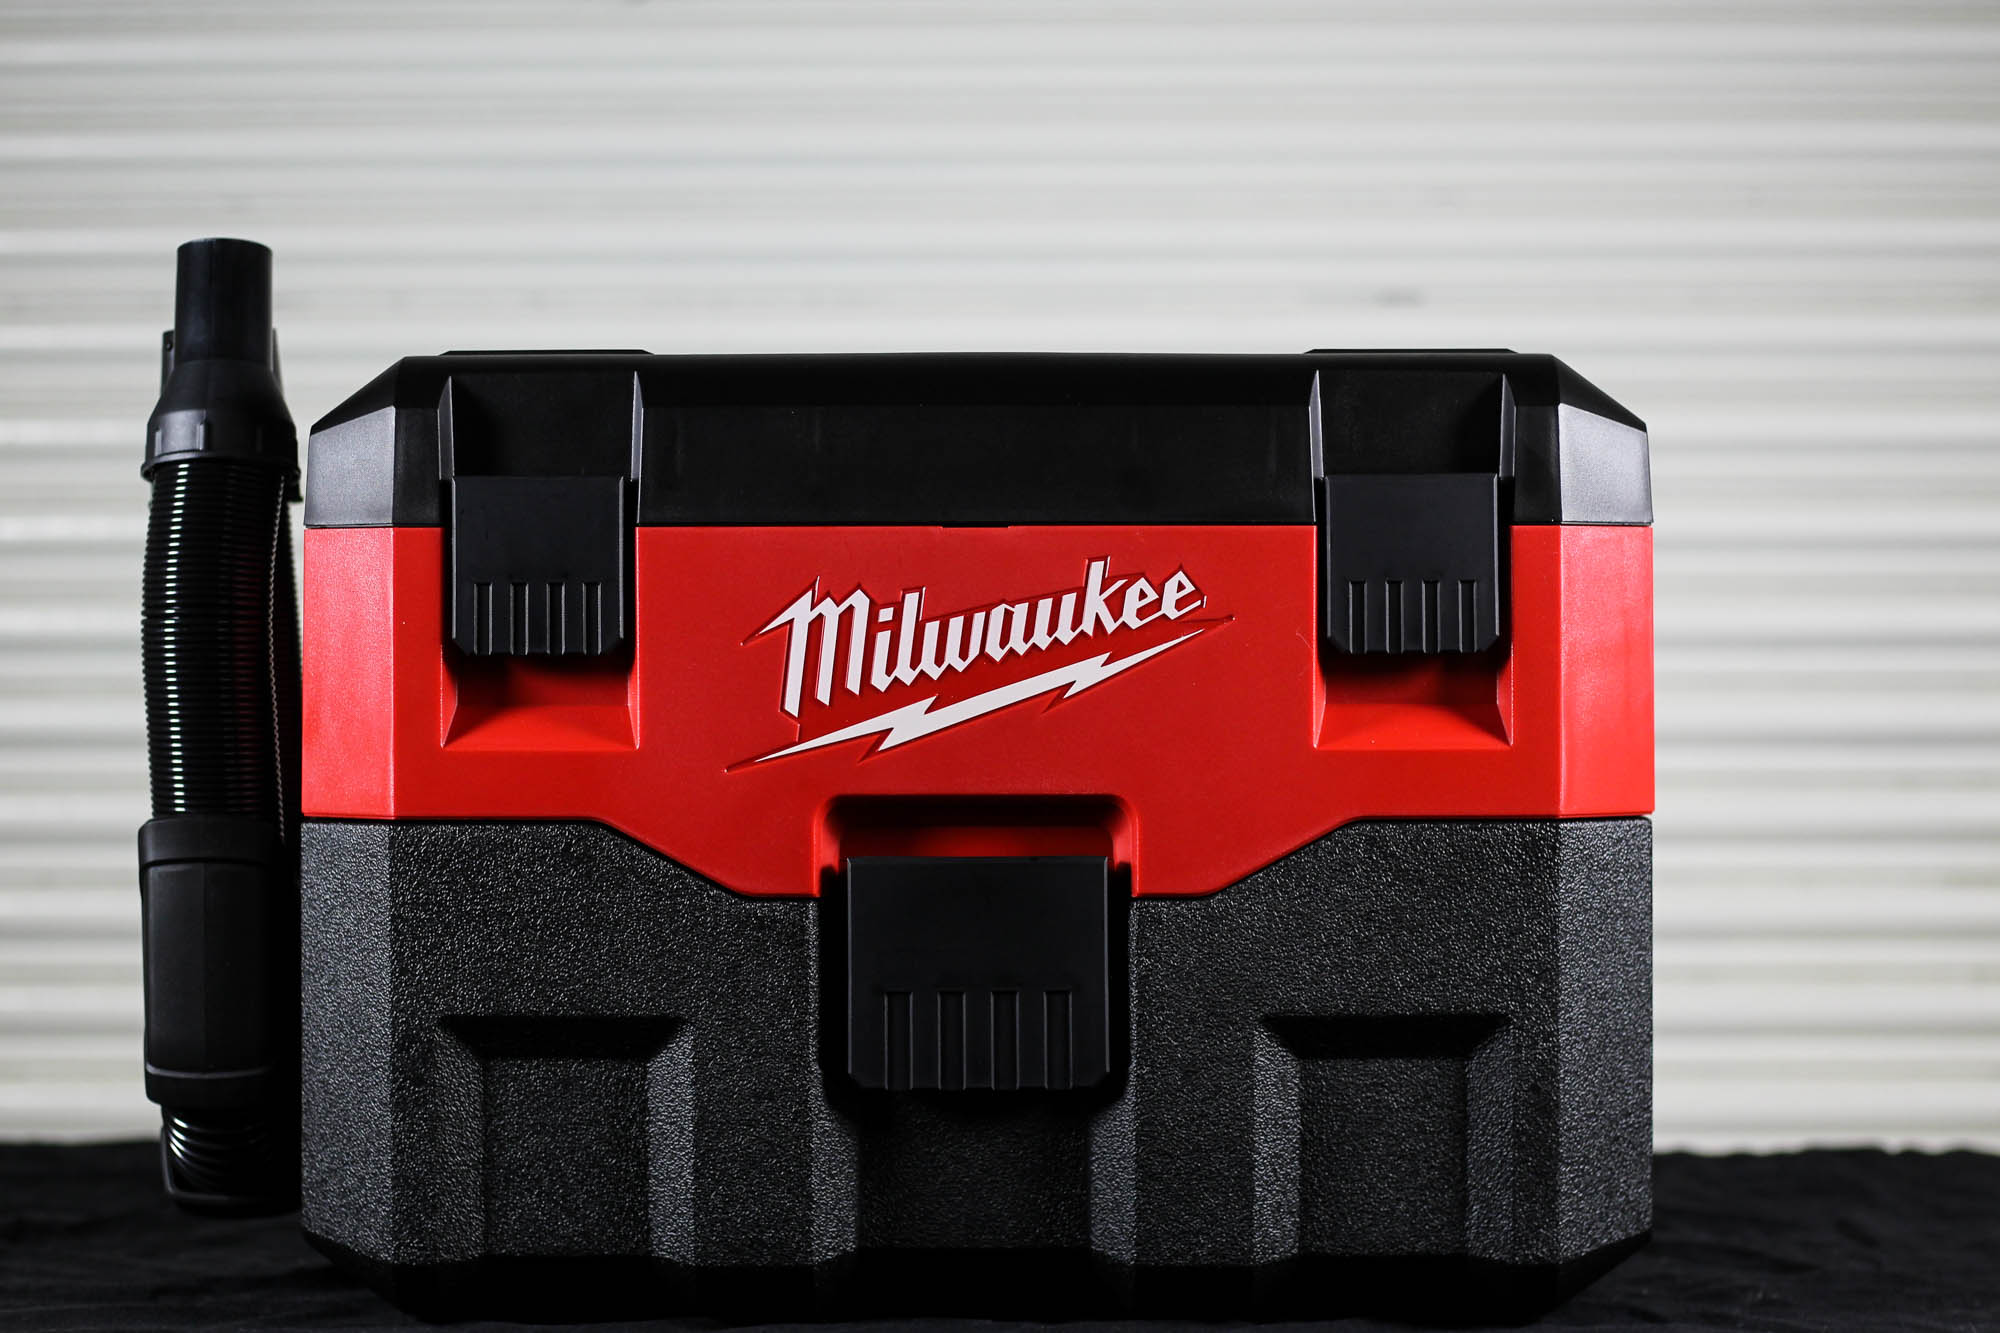 The Milwaukee Wet Dry Vacuum has a 5 Year Warranty!